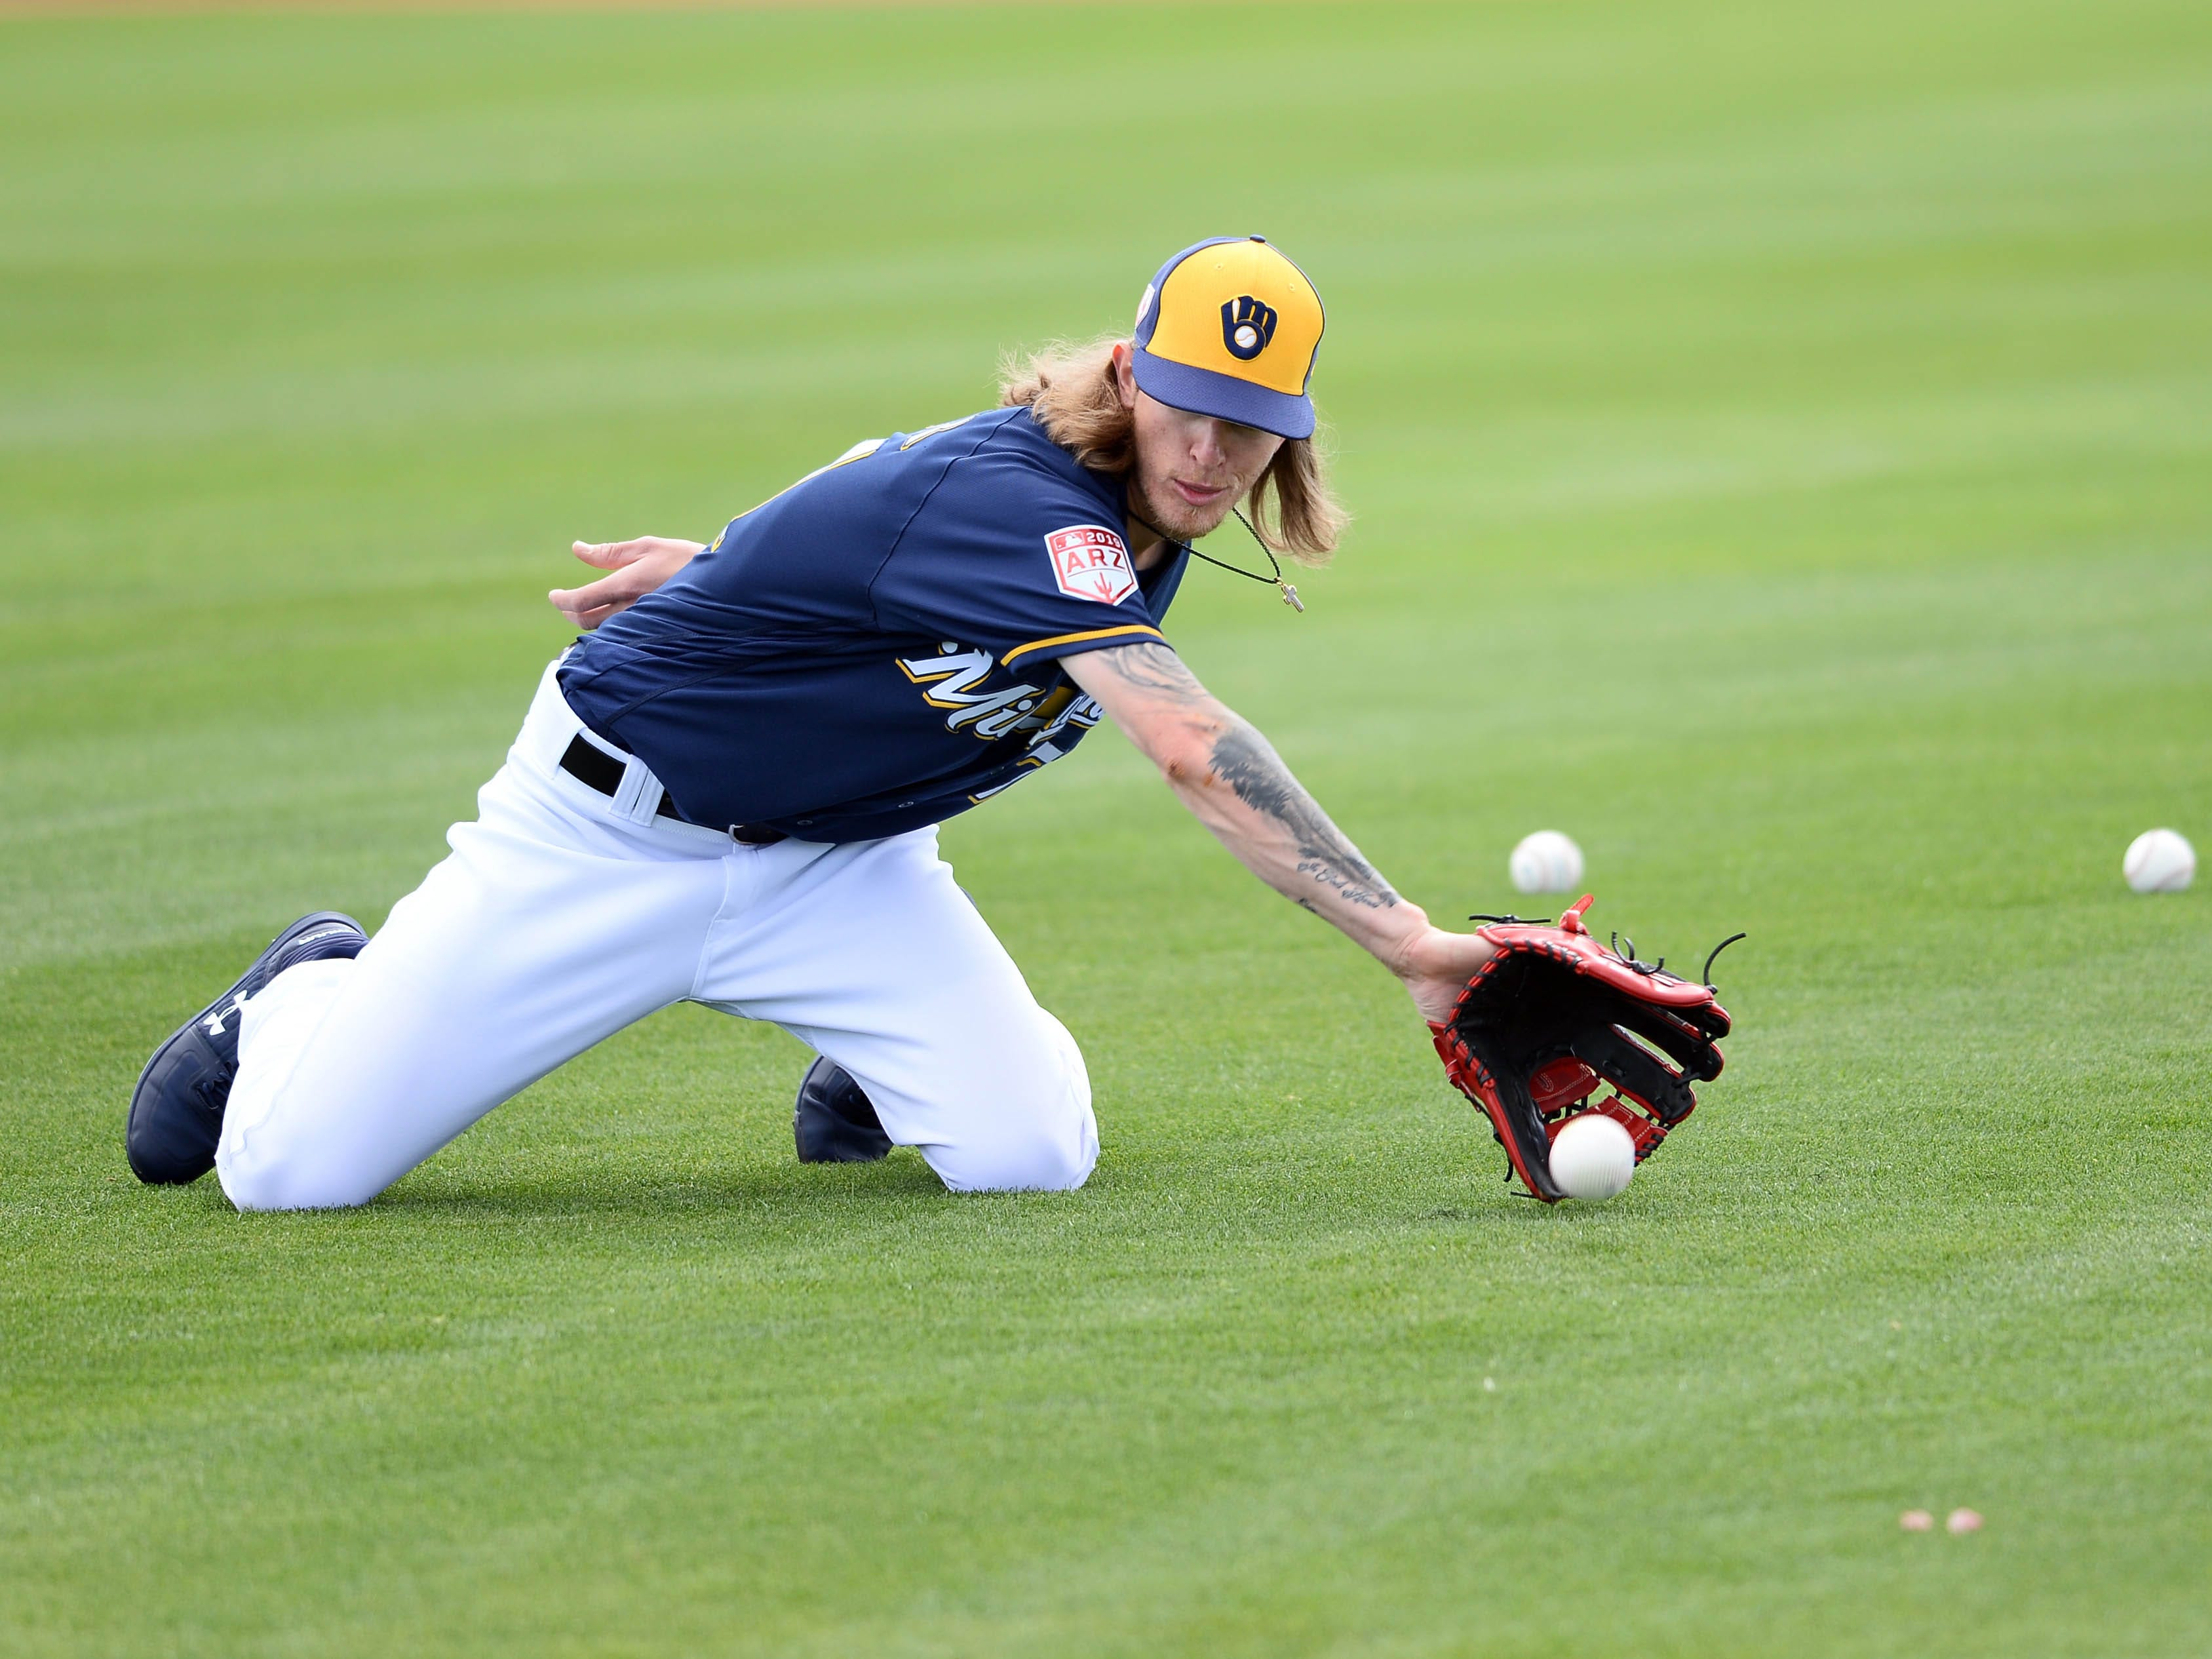 A kneeling Josh Hader gets ready to glove a ball during fielding drills Saturday.